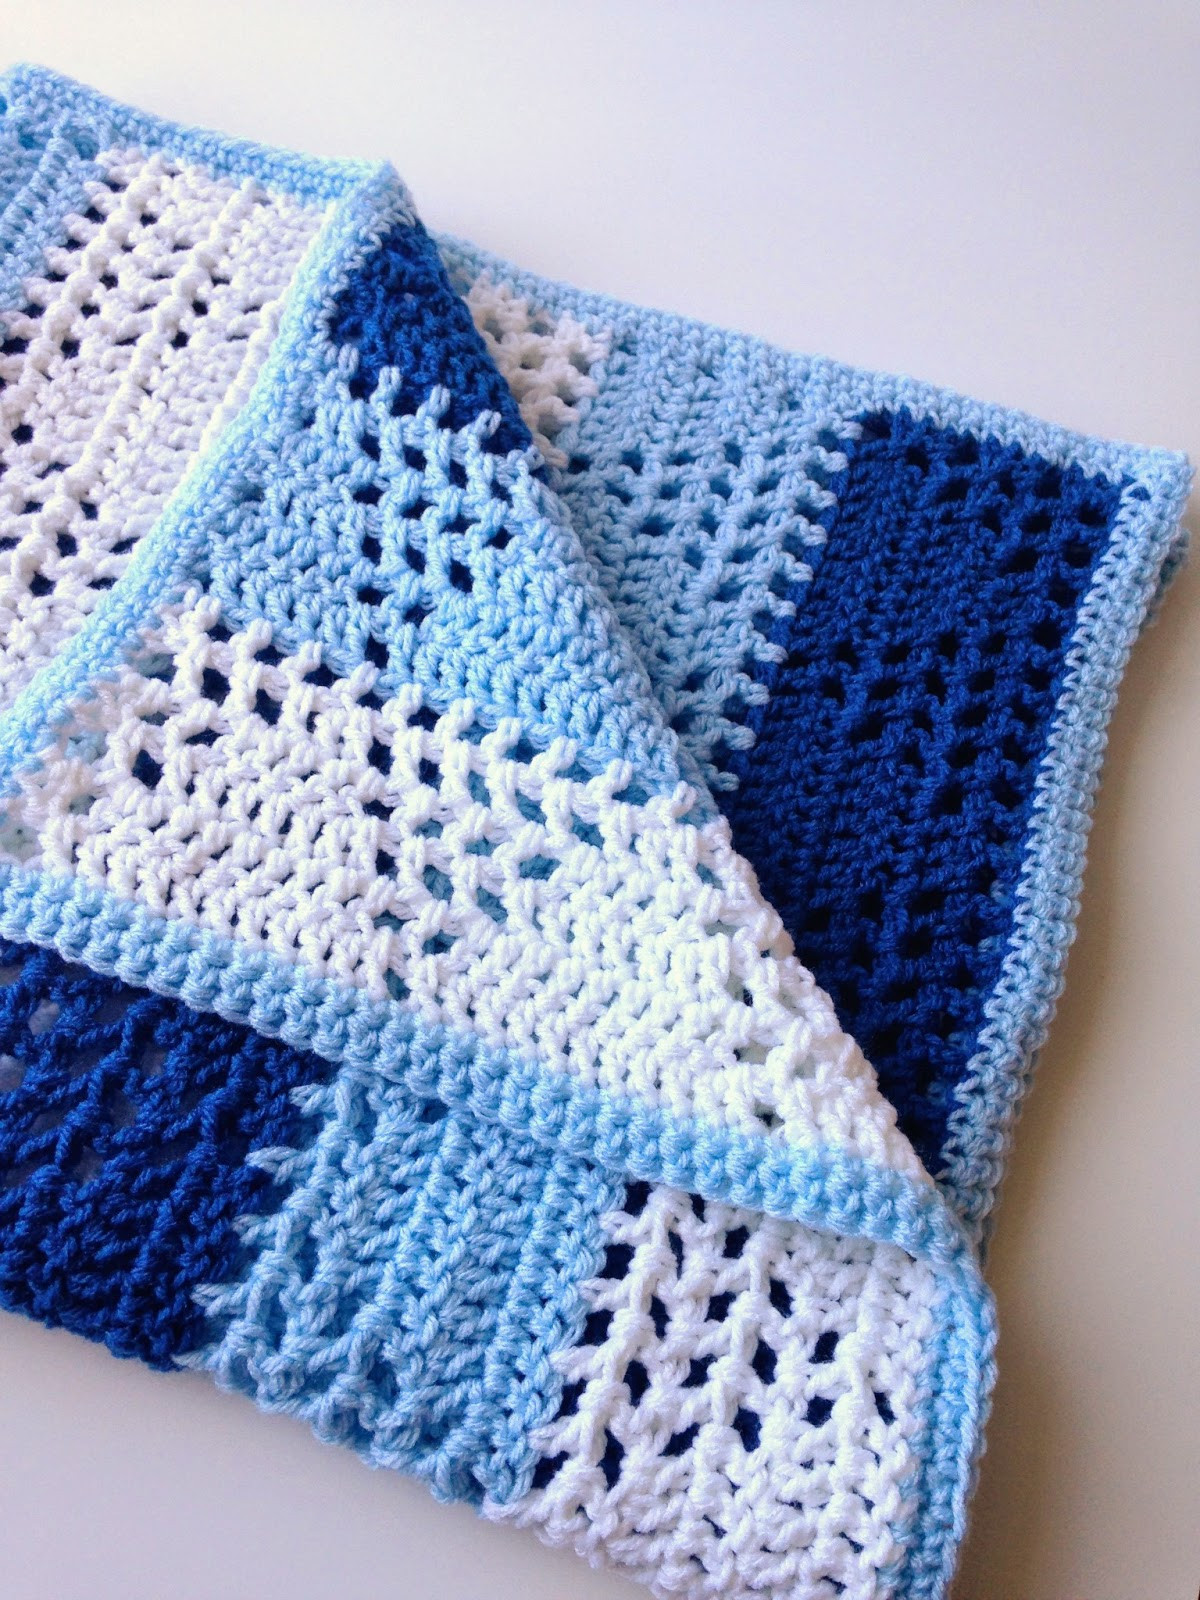 Crochet Stitches for Baby Blankets Best Of 5 Little Monsters Triangles & Stripes Baby Blanket Of Amazing 45 Pics Crochet Stitches for Baby Blankets